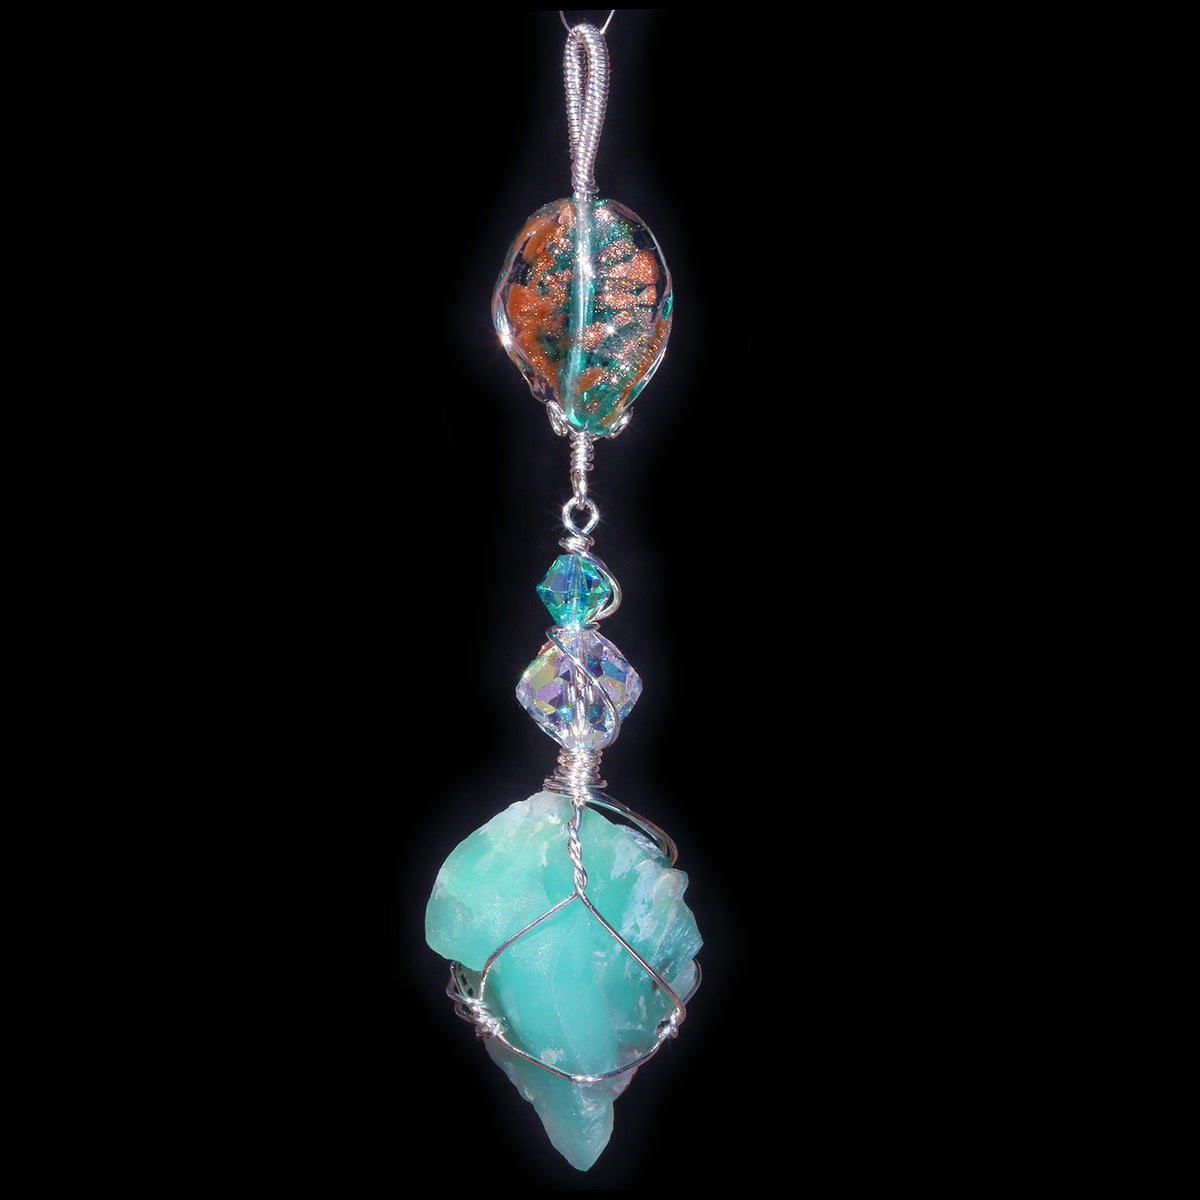 Large Aquaprase Handmade Pendant with Antique Venetian Glass Bead